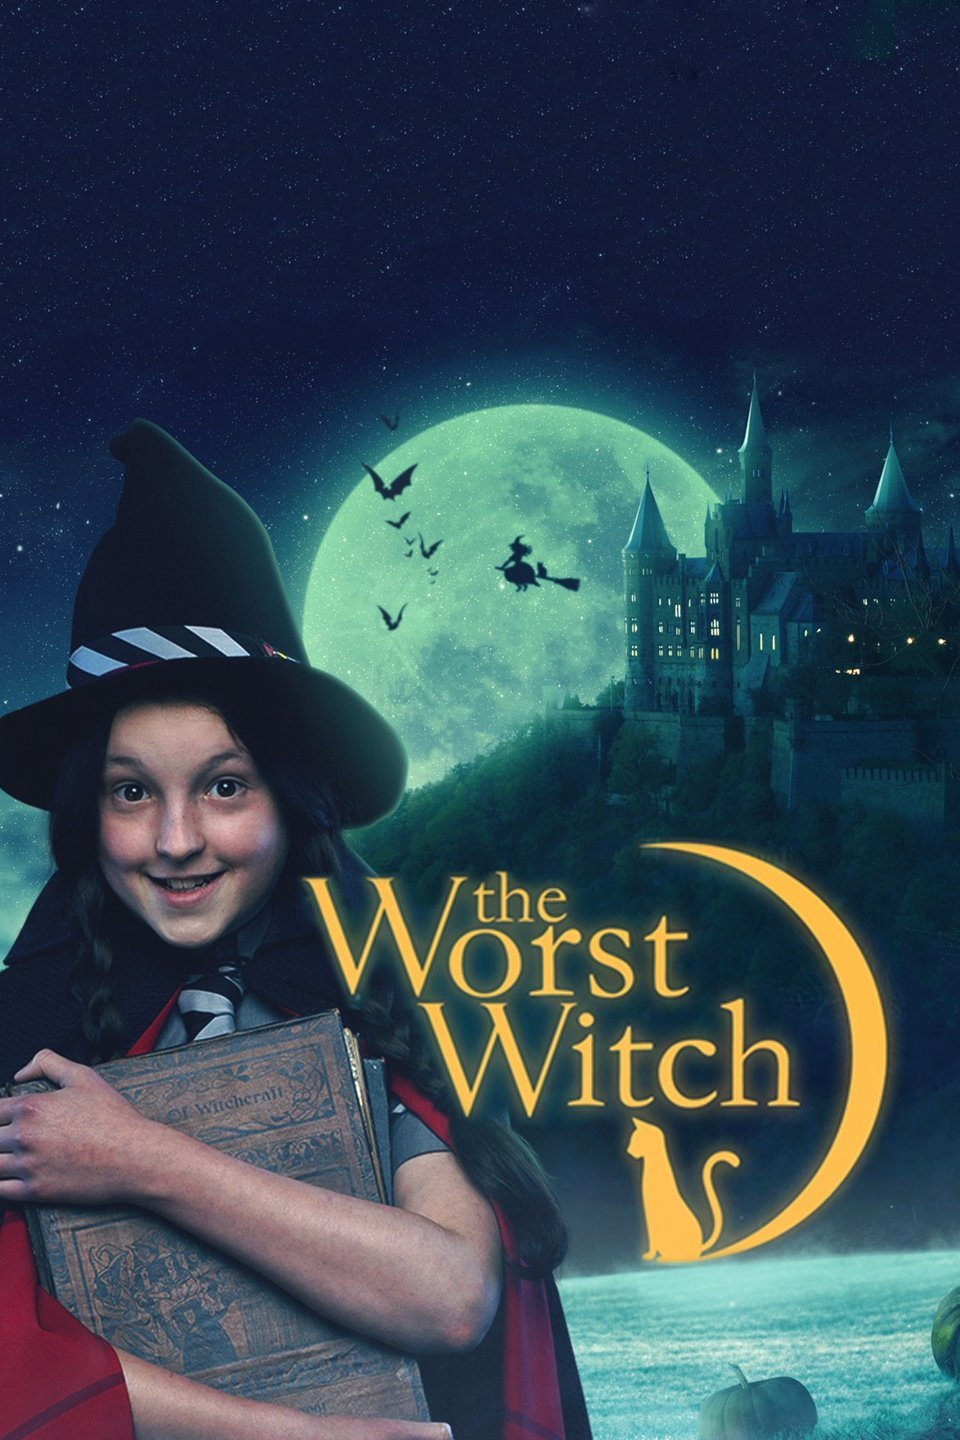 The Worst Witch S01 E08